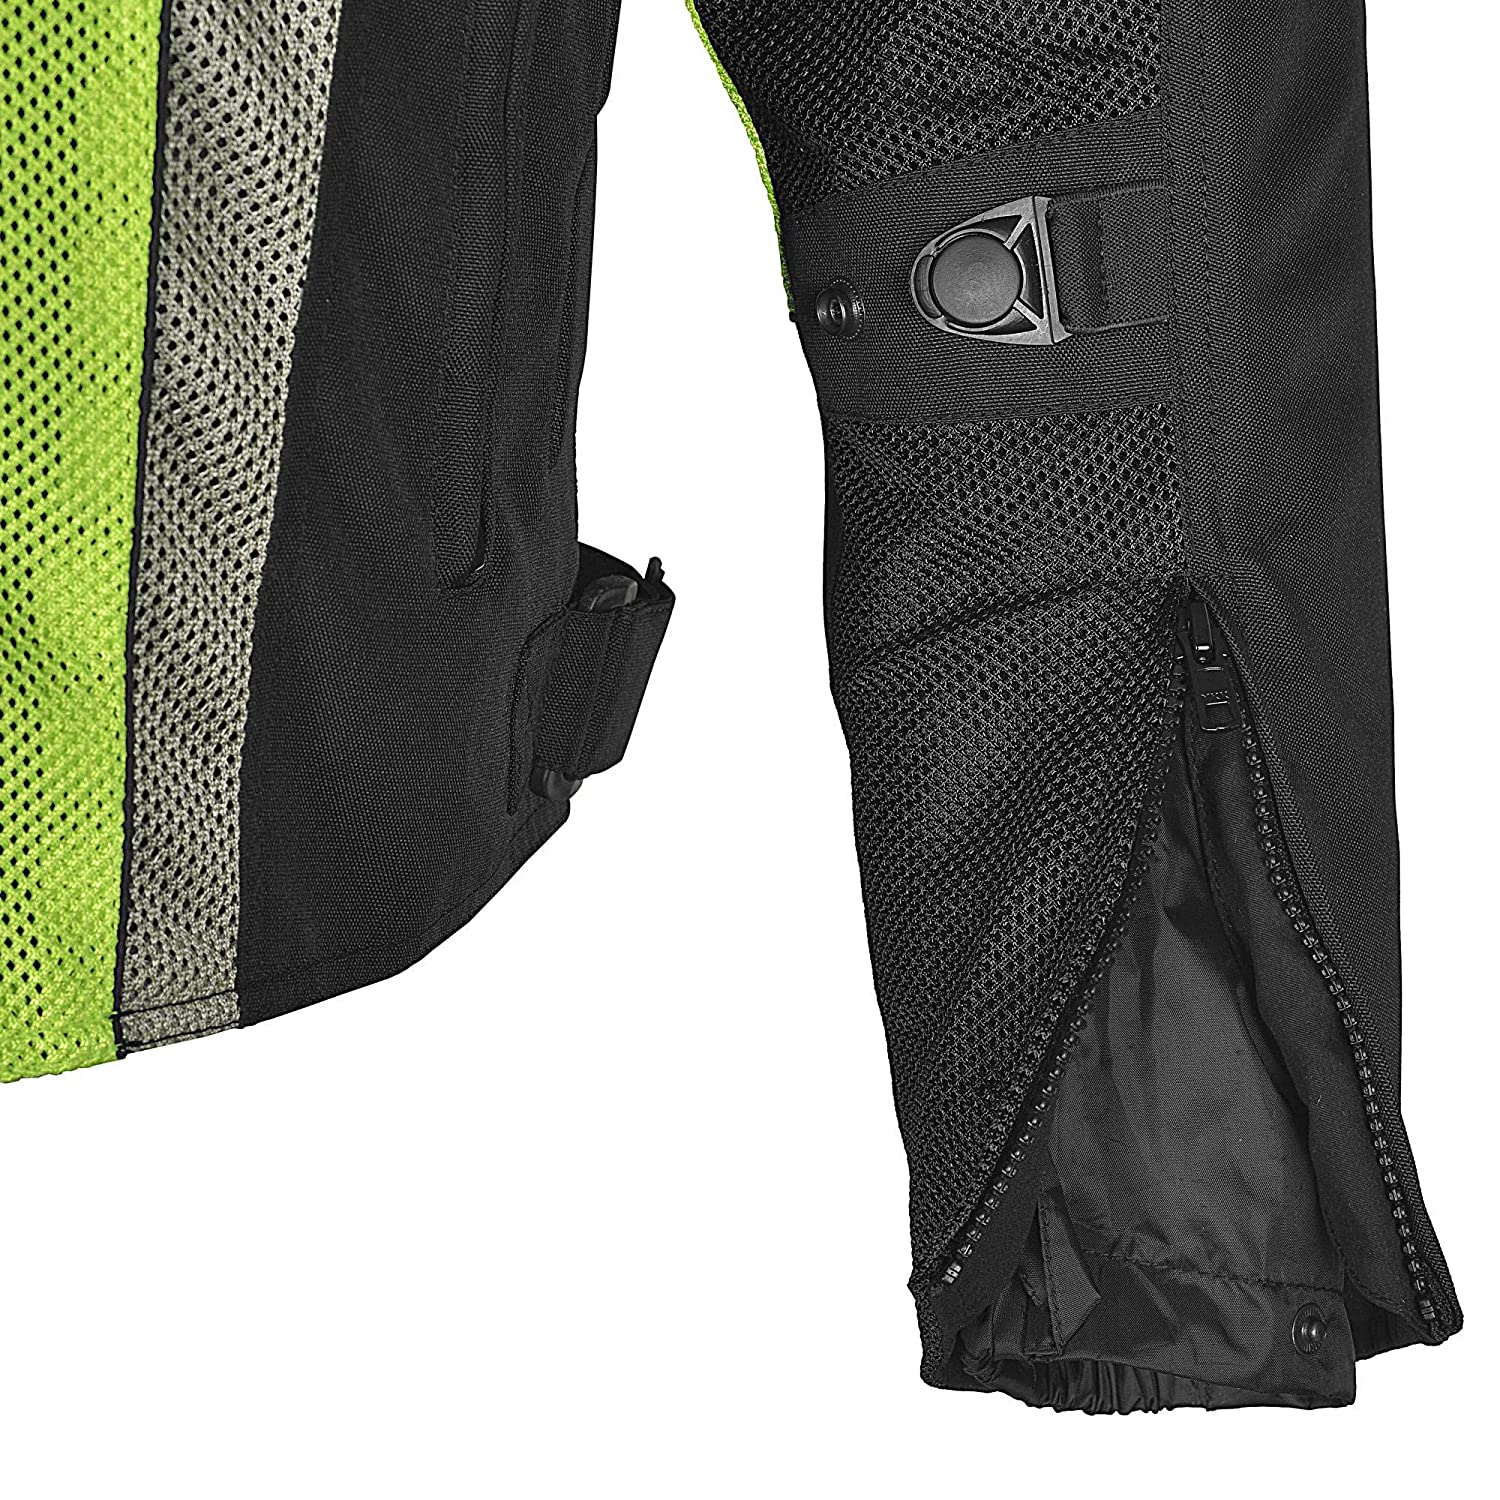 Men Motorcycle Mesh Race Jacket with CE Protection Neon Green Black MBJ054-1 XL